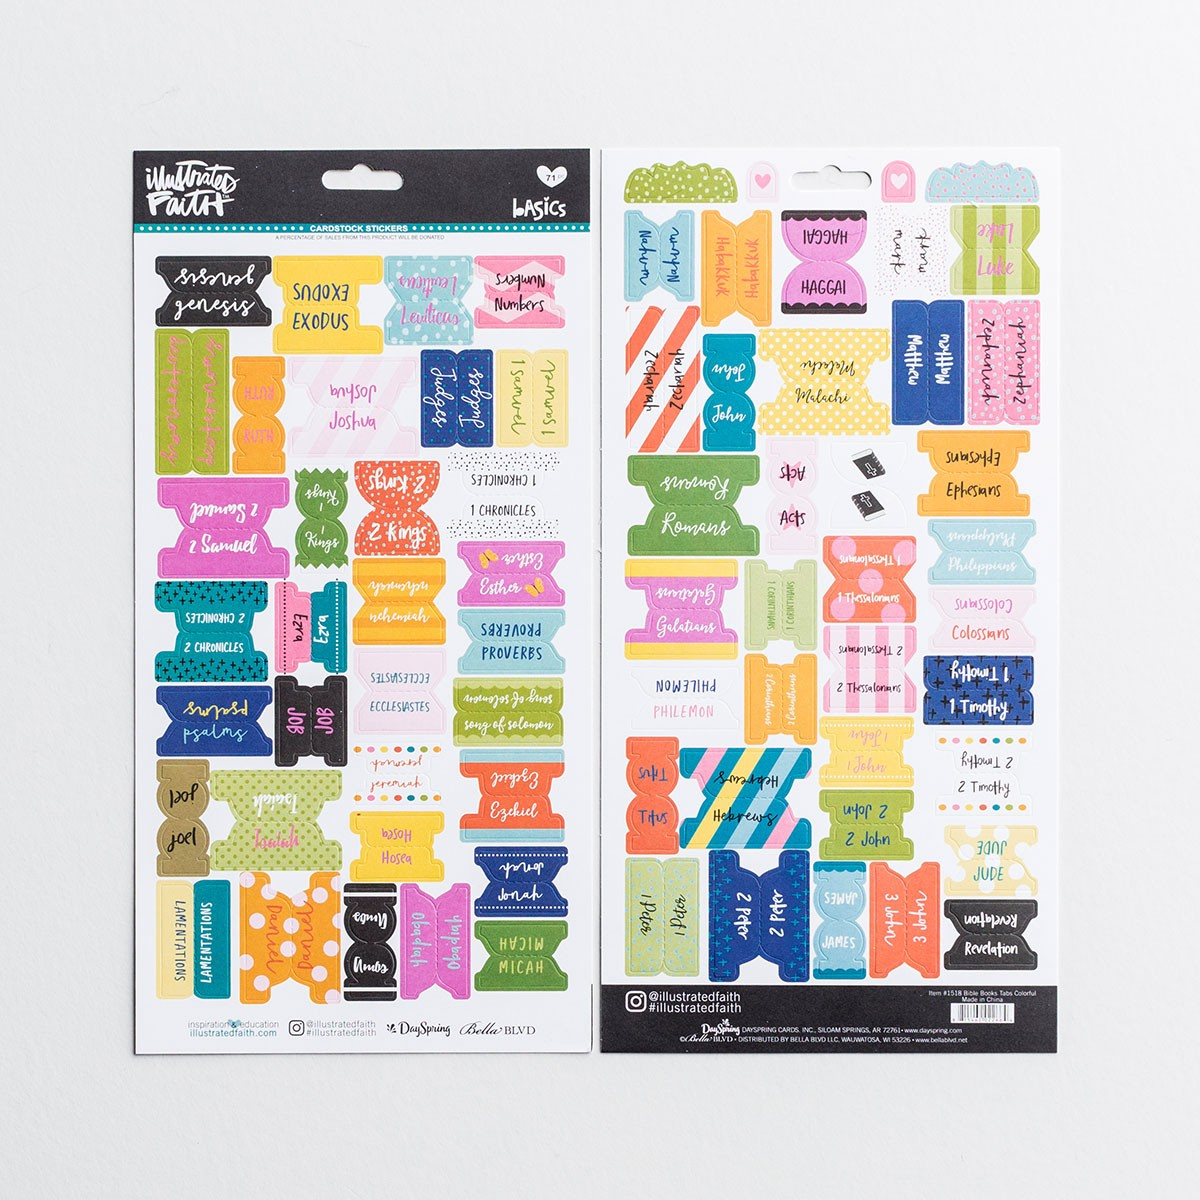 Illustrated Faith - Books Of The Bible Tabs, Colorful | Dayspring - Free Printable Books Of The Bible Tabs